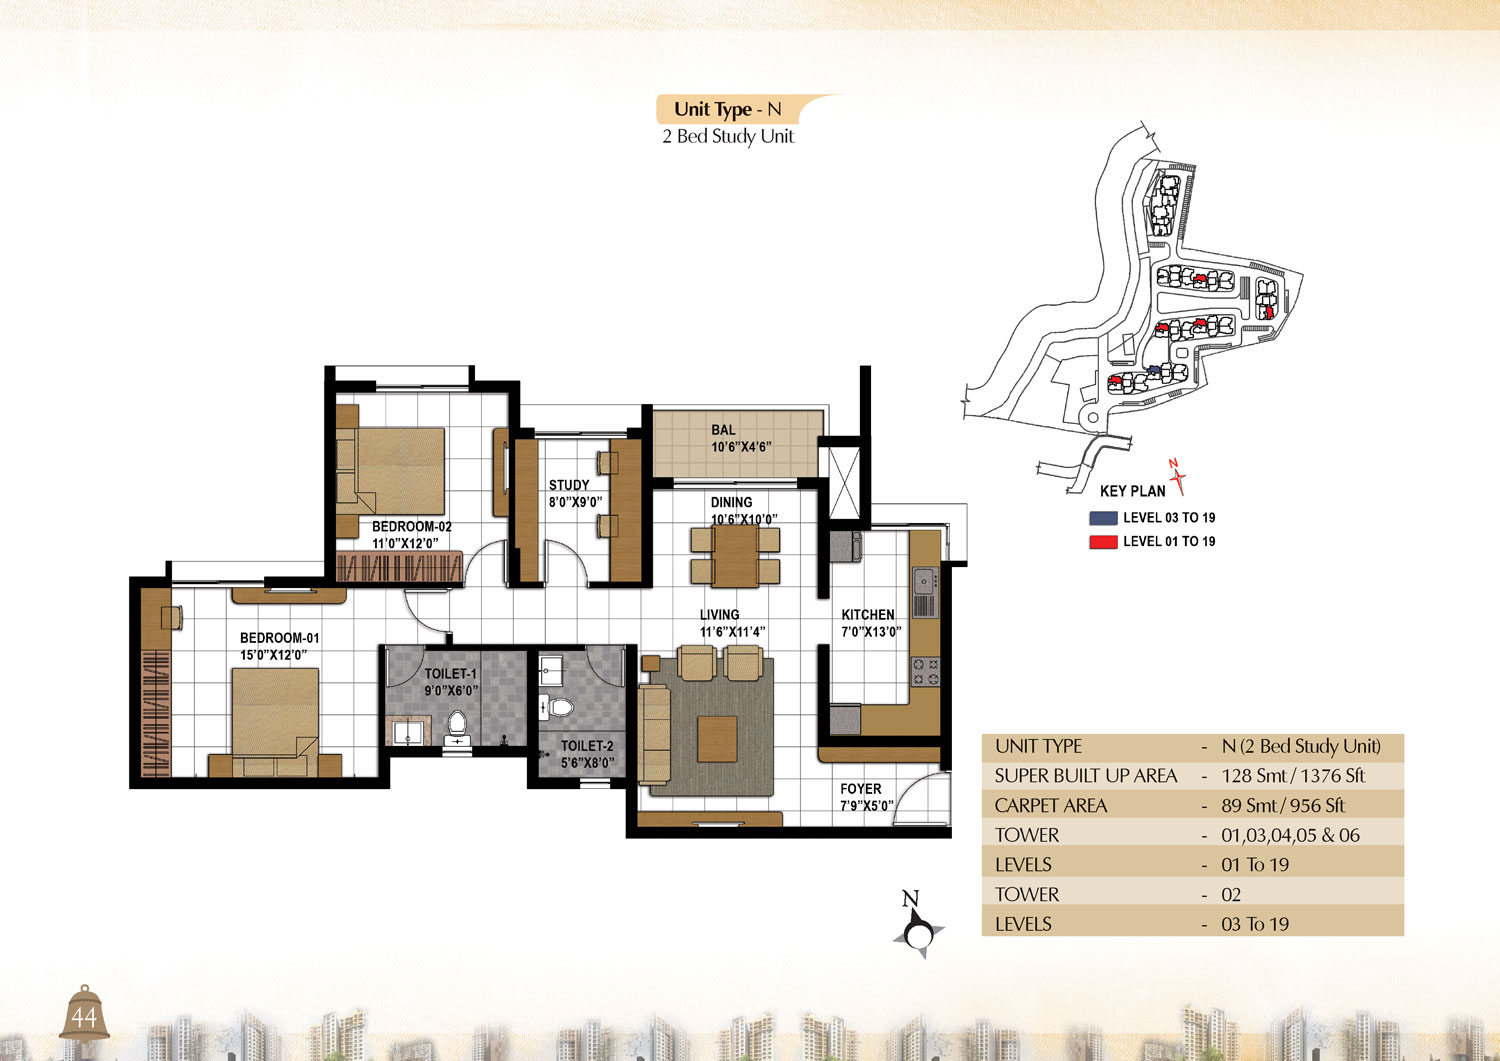 Type N - 2 Bed Study -  1376 Sq Ft